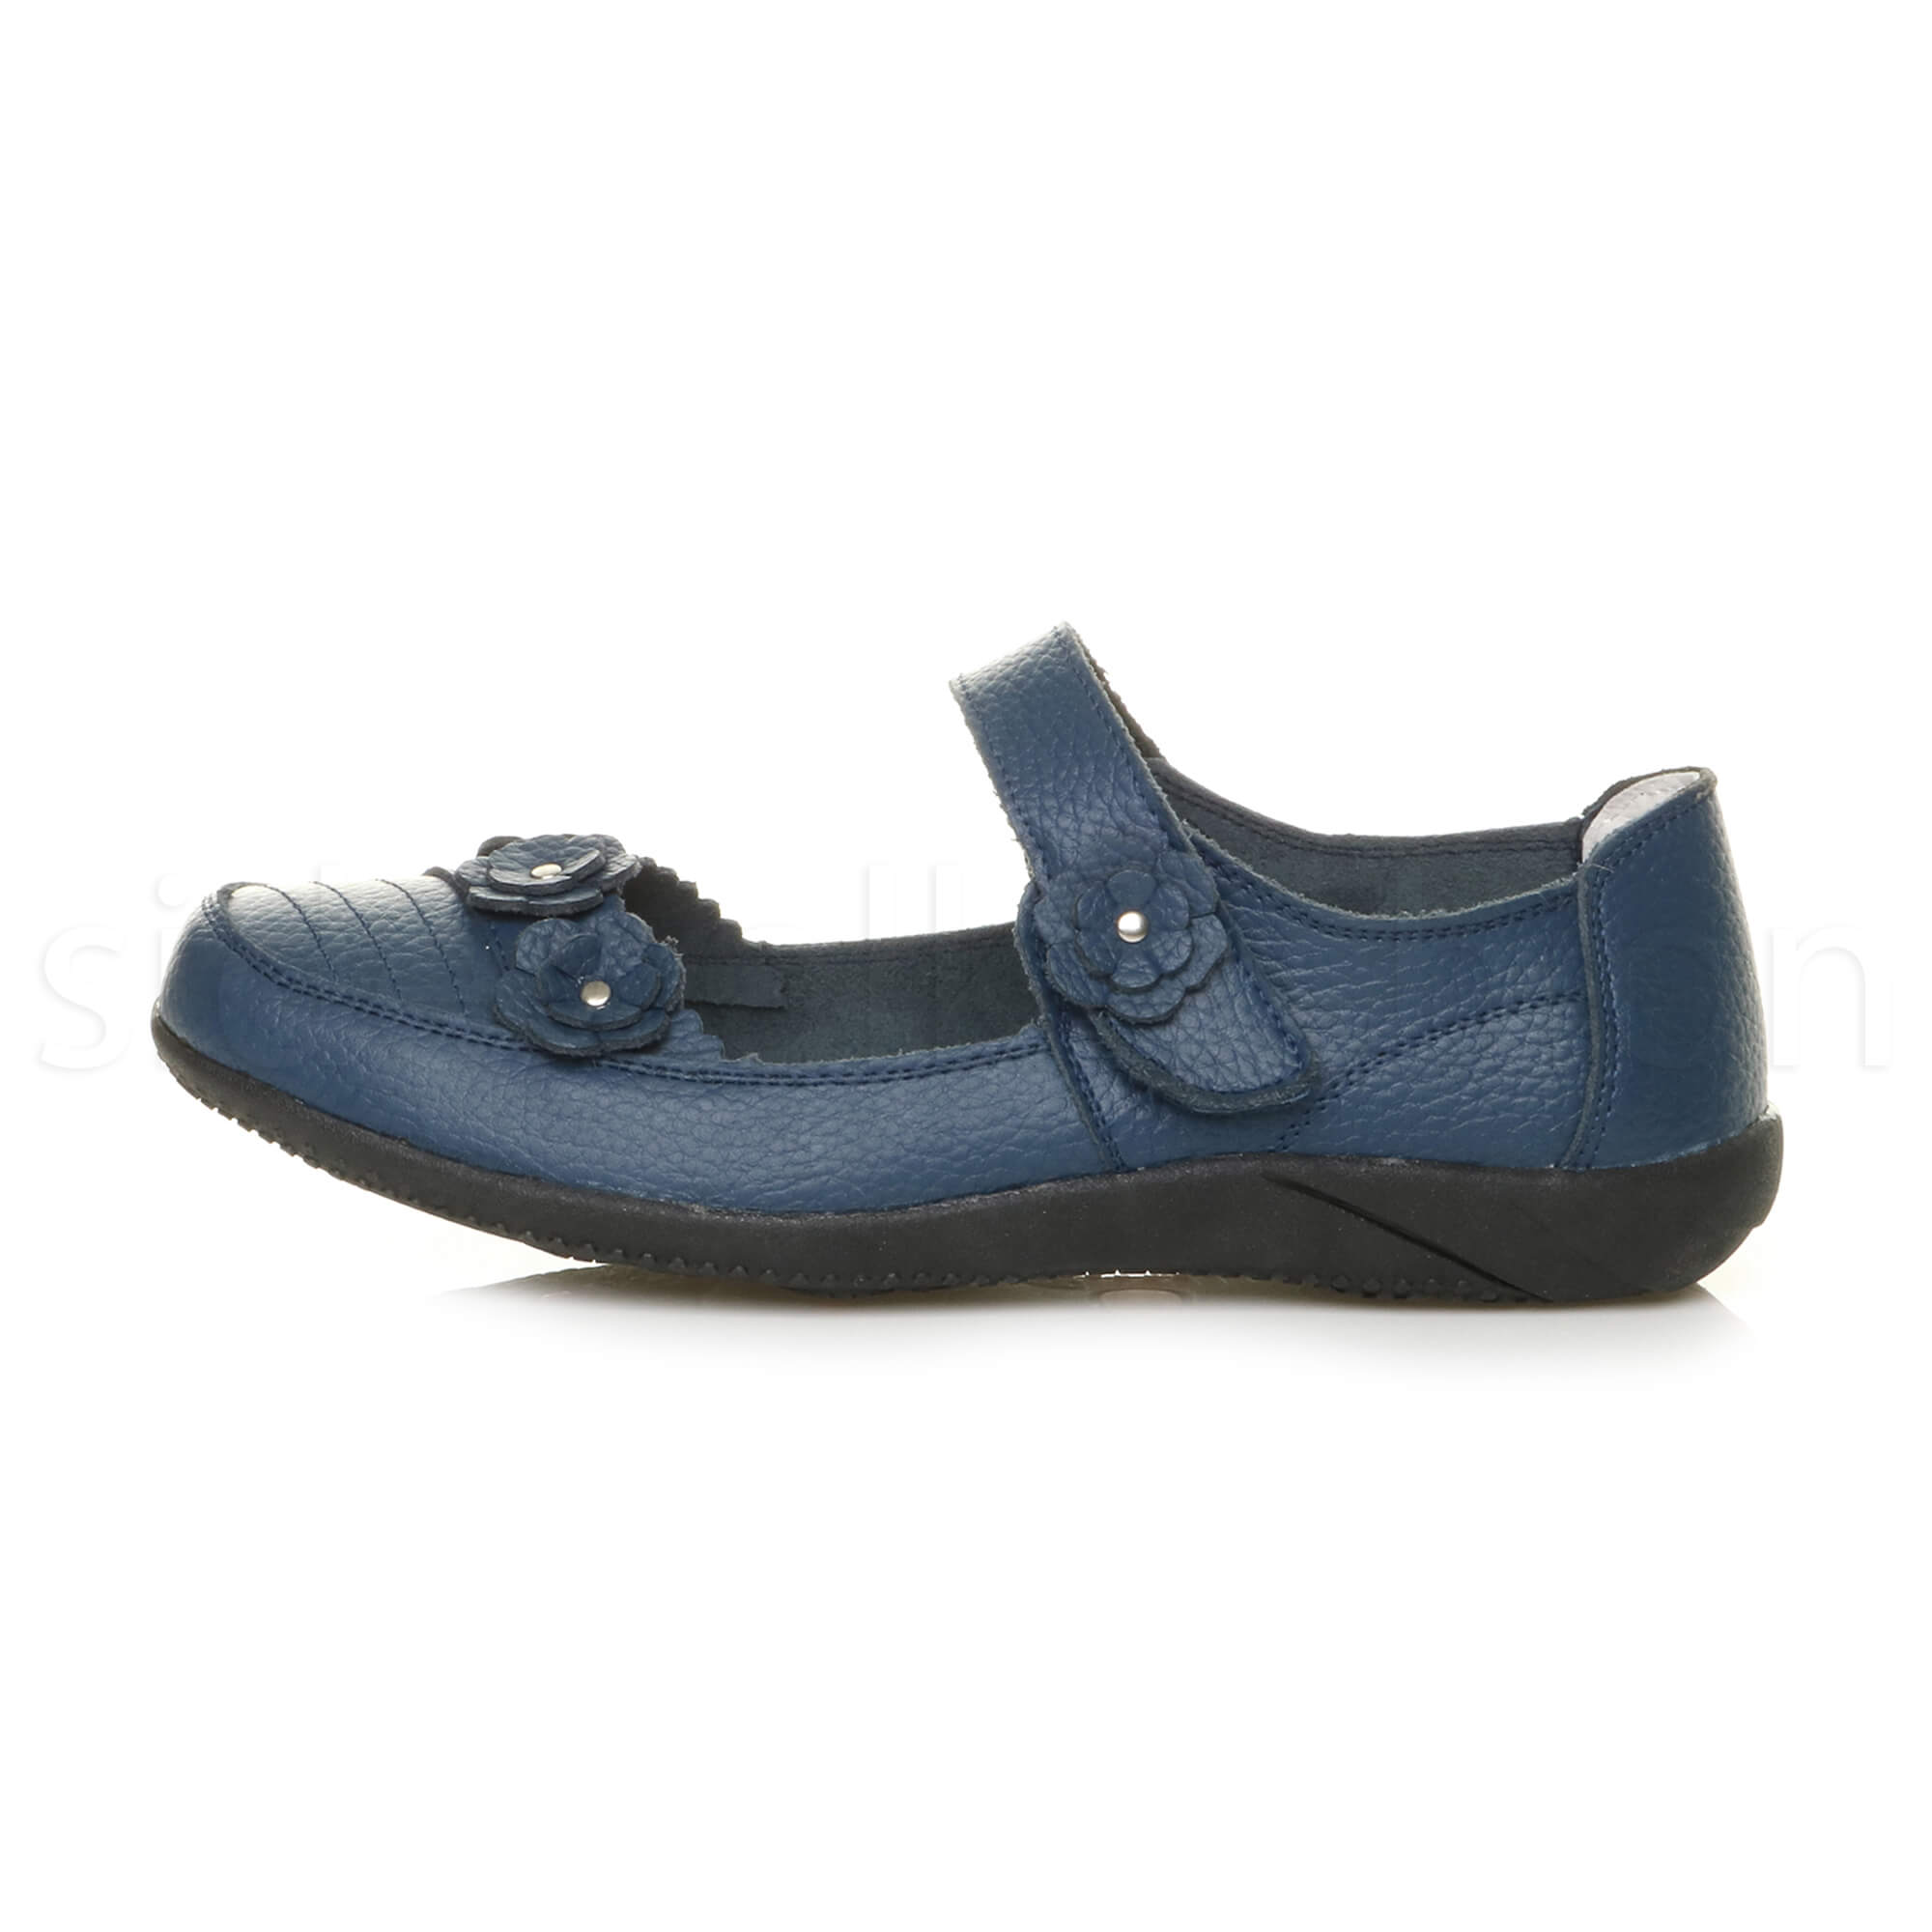 Womens-ladies-leather-comfort-walking-casual-sandals-mary-jane-strap-shoes-size thumbnail 33